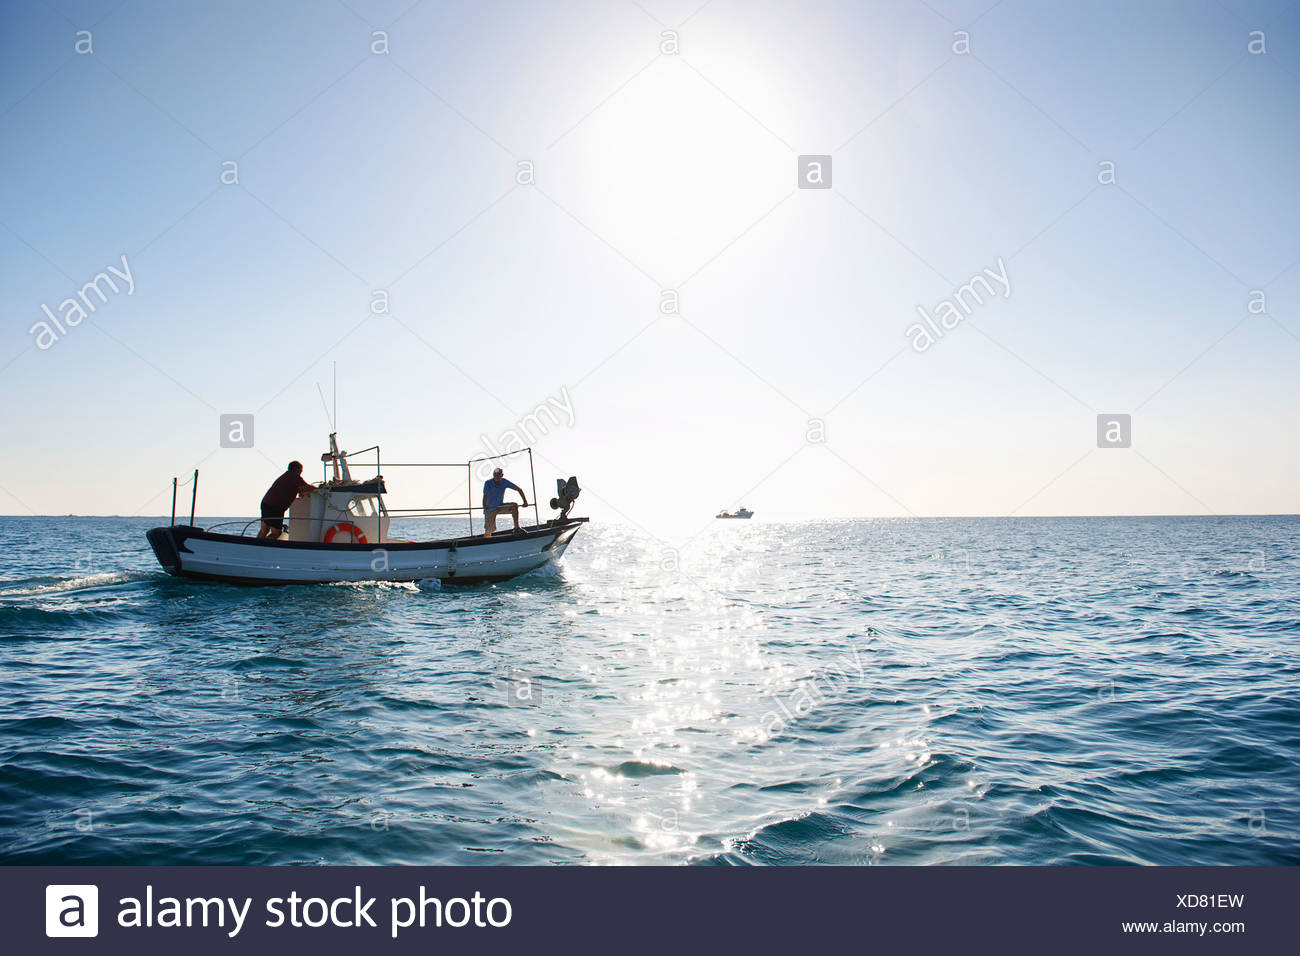 Fishermen on fishing boat at sea - Stock Image